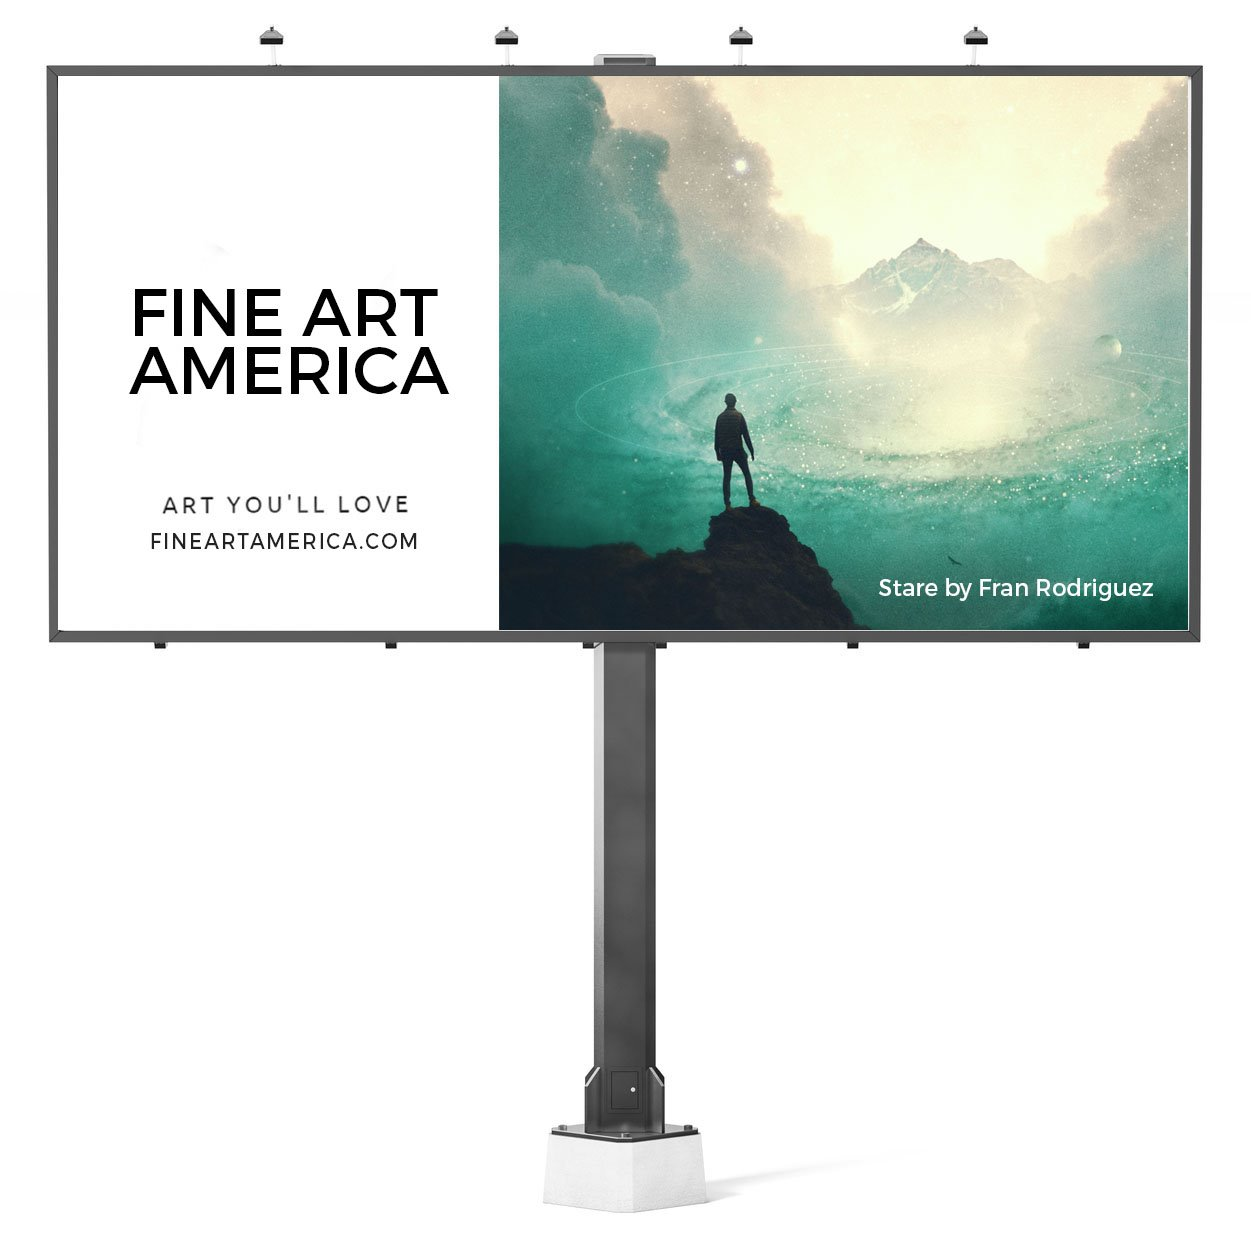 example billboard for photo contest